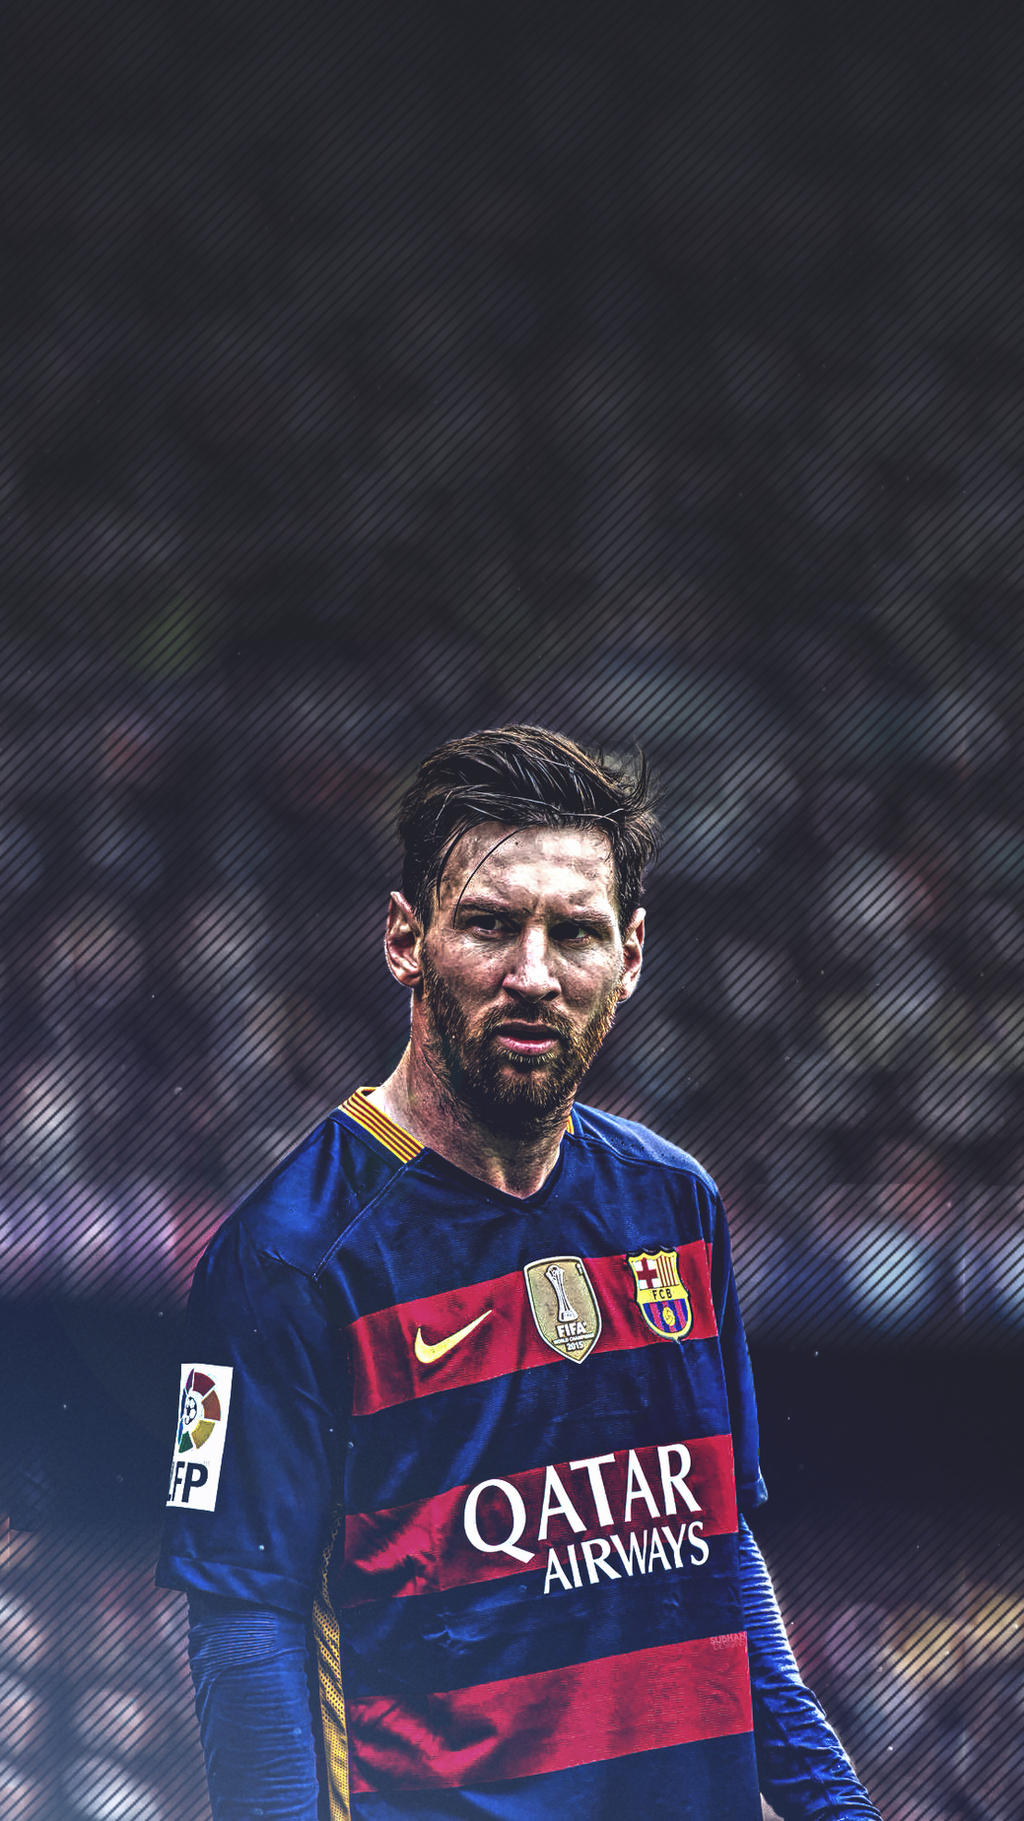 Lionel-Messi-Beard-Mobile-wallpaper-2016 by subhan22 on